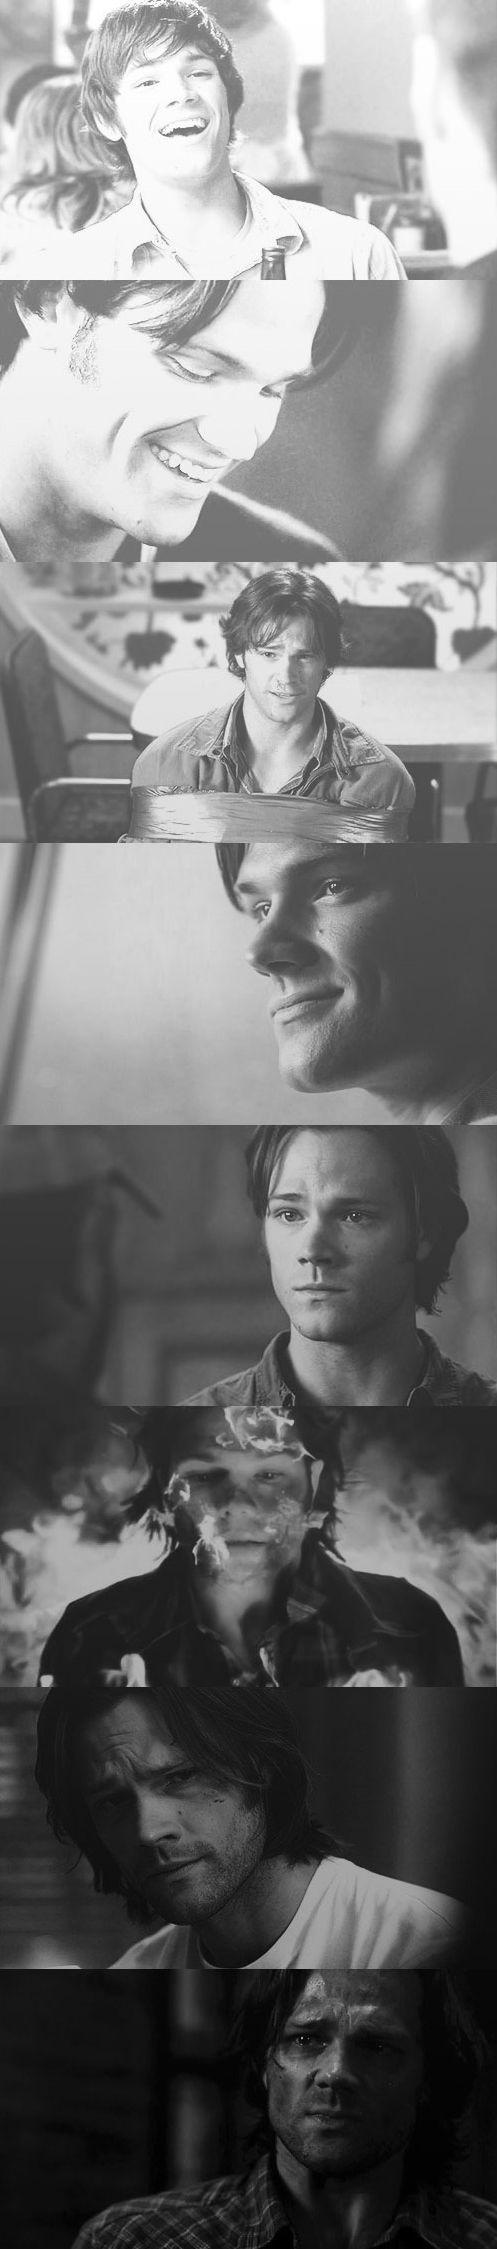 Take a good look at Sam's face in the first picture. Then scroll straight down to the last two. Such a change.